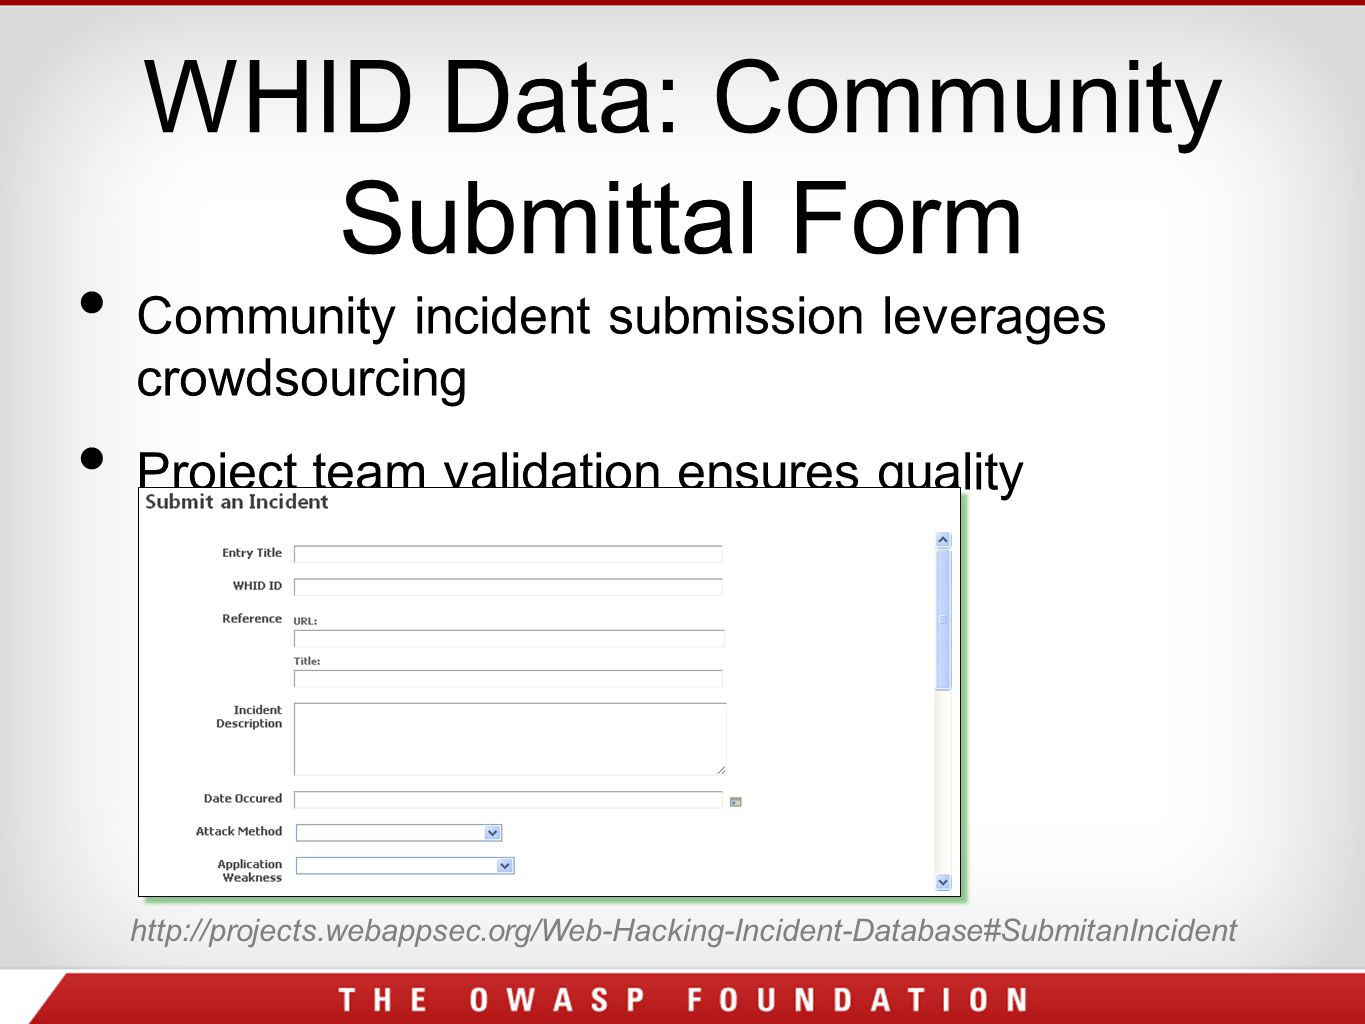 WHID Data: Community Submittal Form Community incident submission leverages crowdsourcing Project team validation ensures quality http://projects.webappsec.org/Web-Hacking-Incident-Database#SubmitanIncident